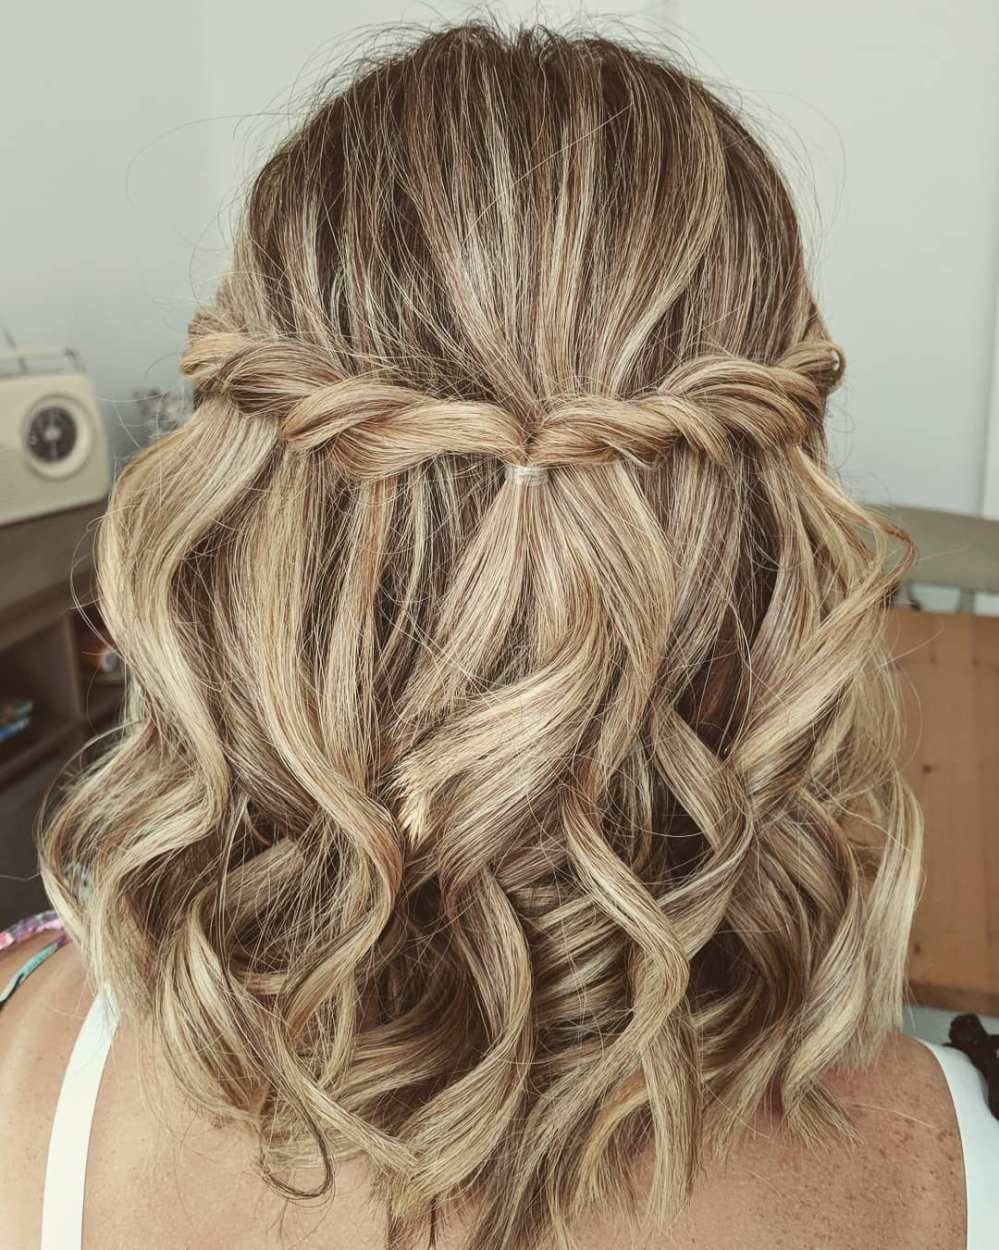 60 Trendiest Updos For Medium Length Hair Formal Hairstyles For Short Hair Updos For Medium Length Hair Up Dos For Medium Hair